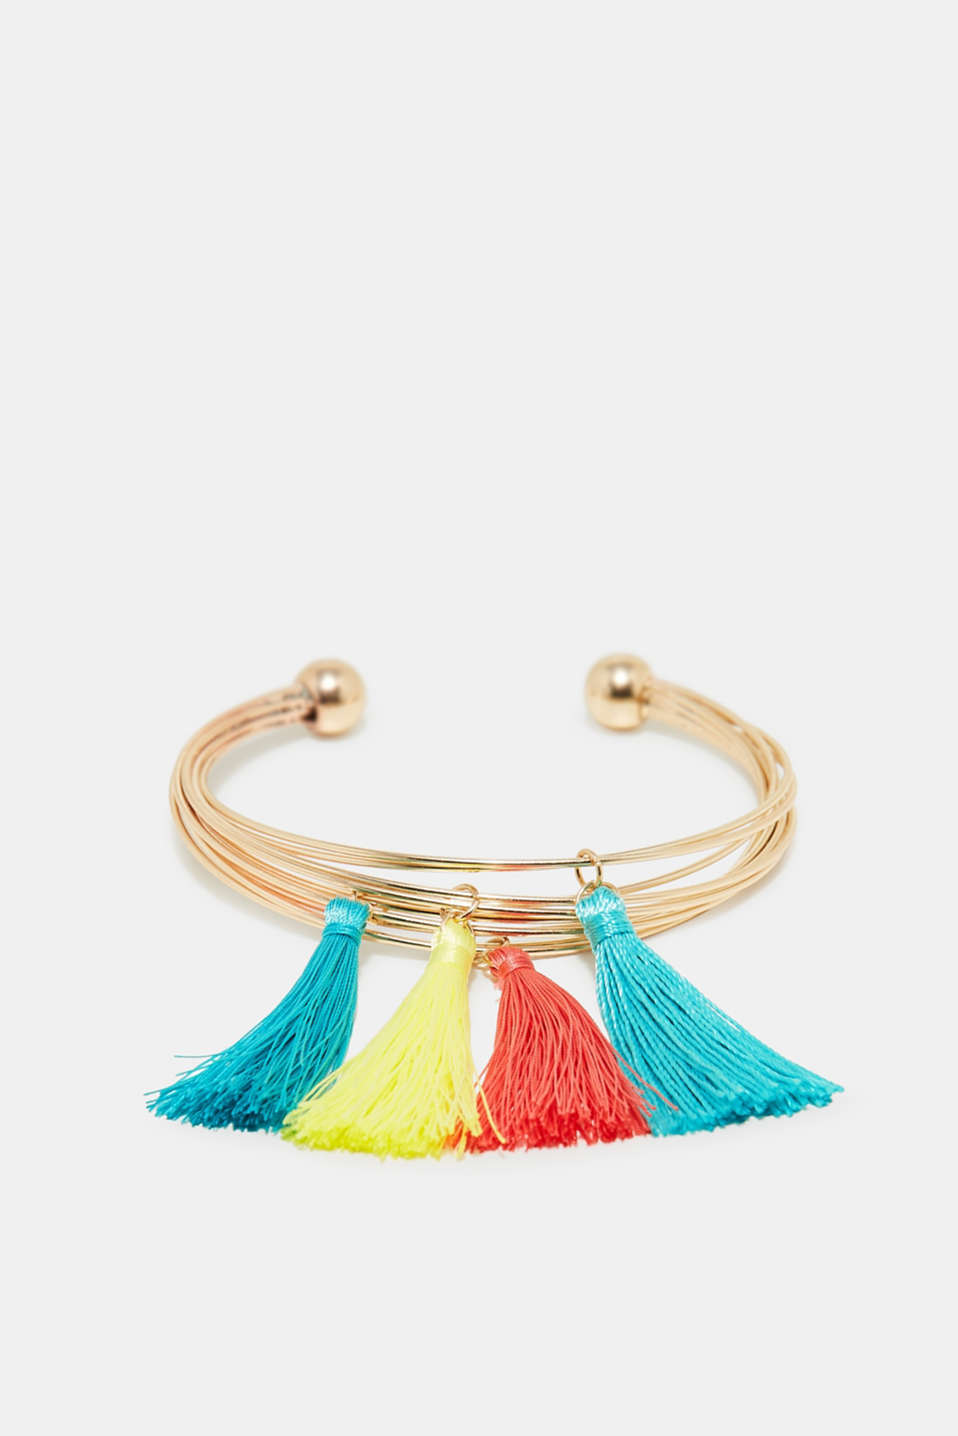 Esprit - Bangle with colourful tassels